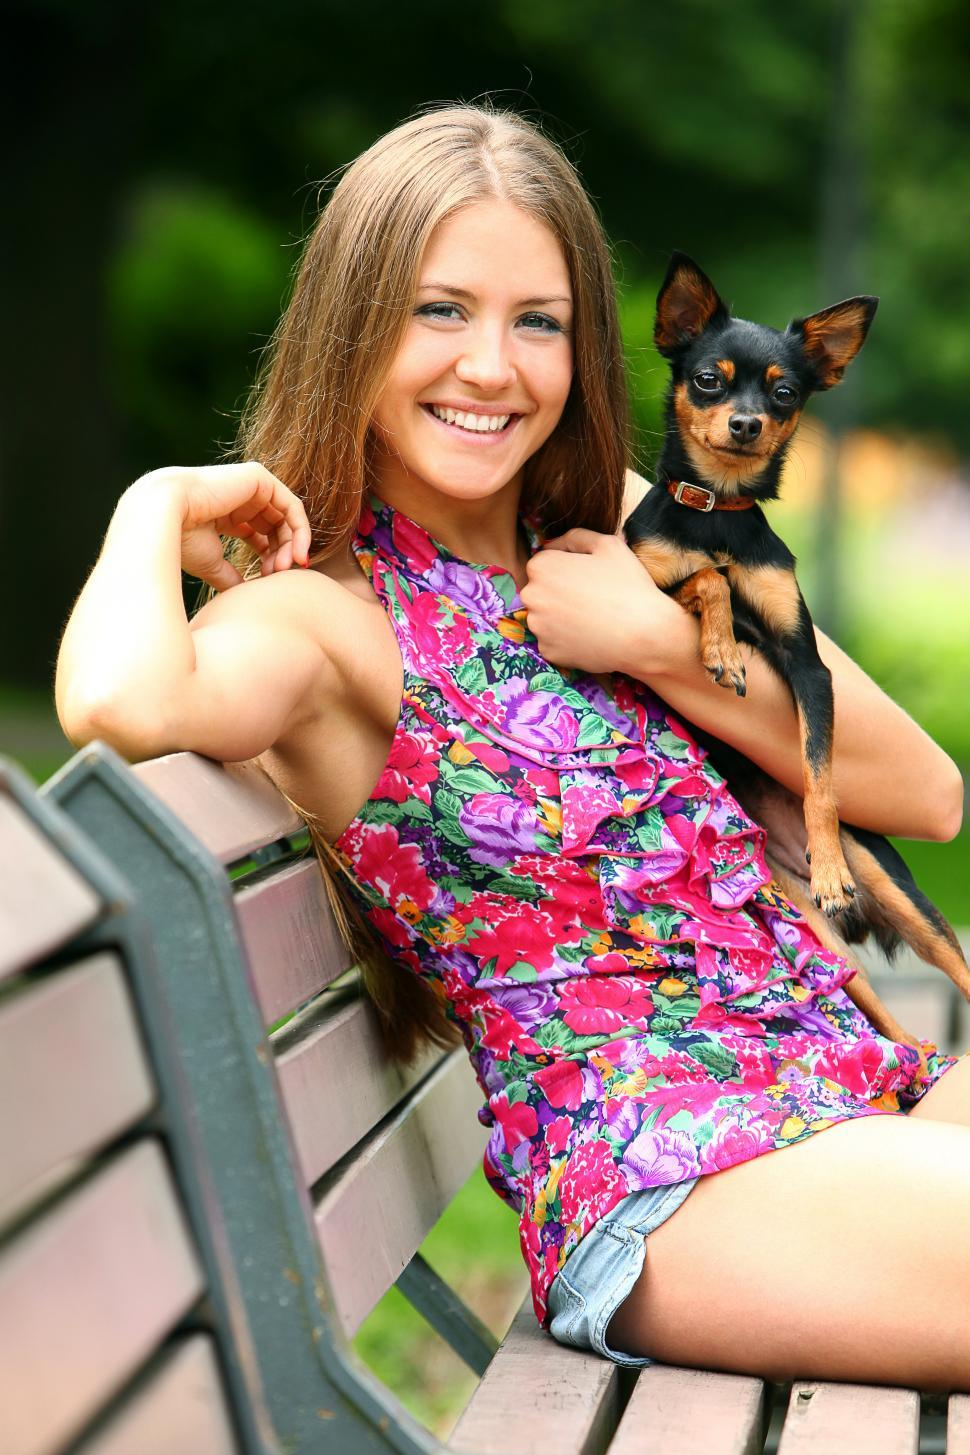 Download Free Stock Photo of Young happy girl with her cute dog on a park bench outdoors